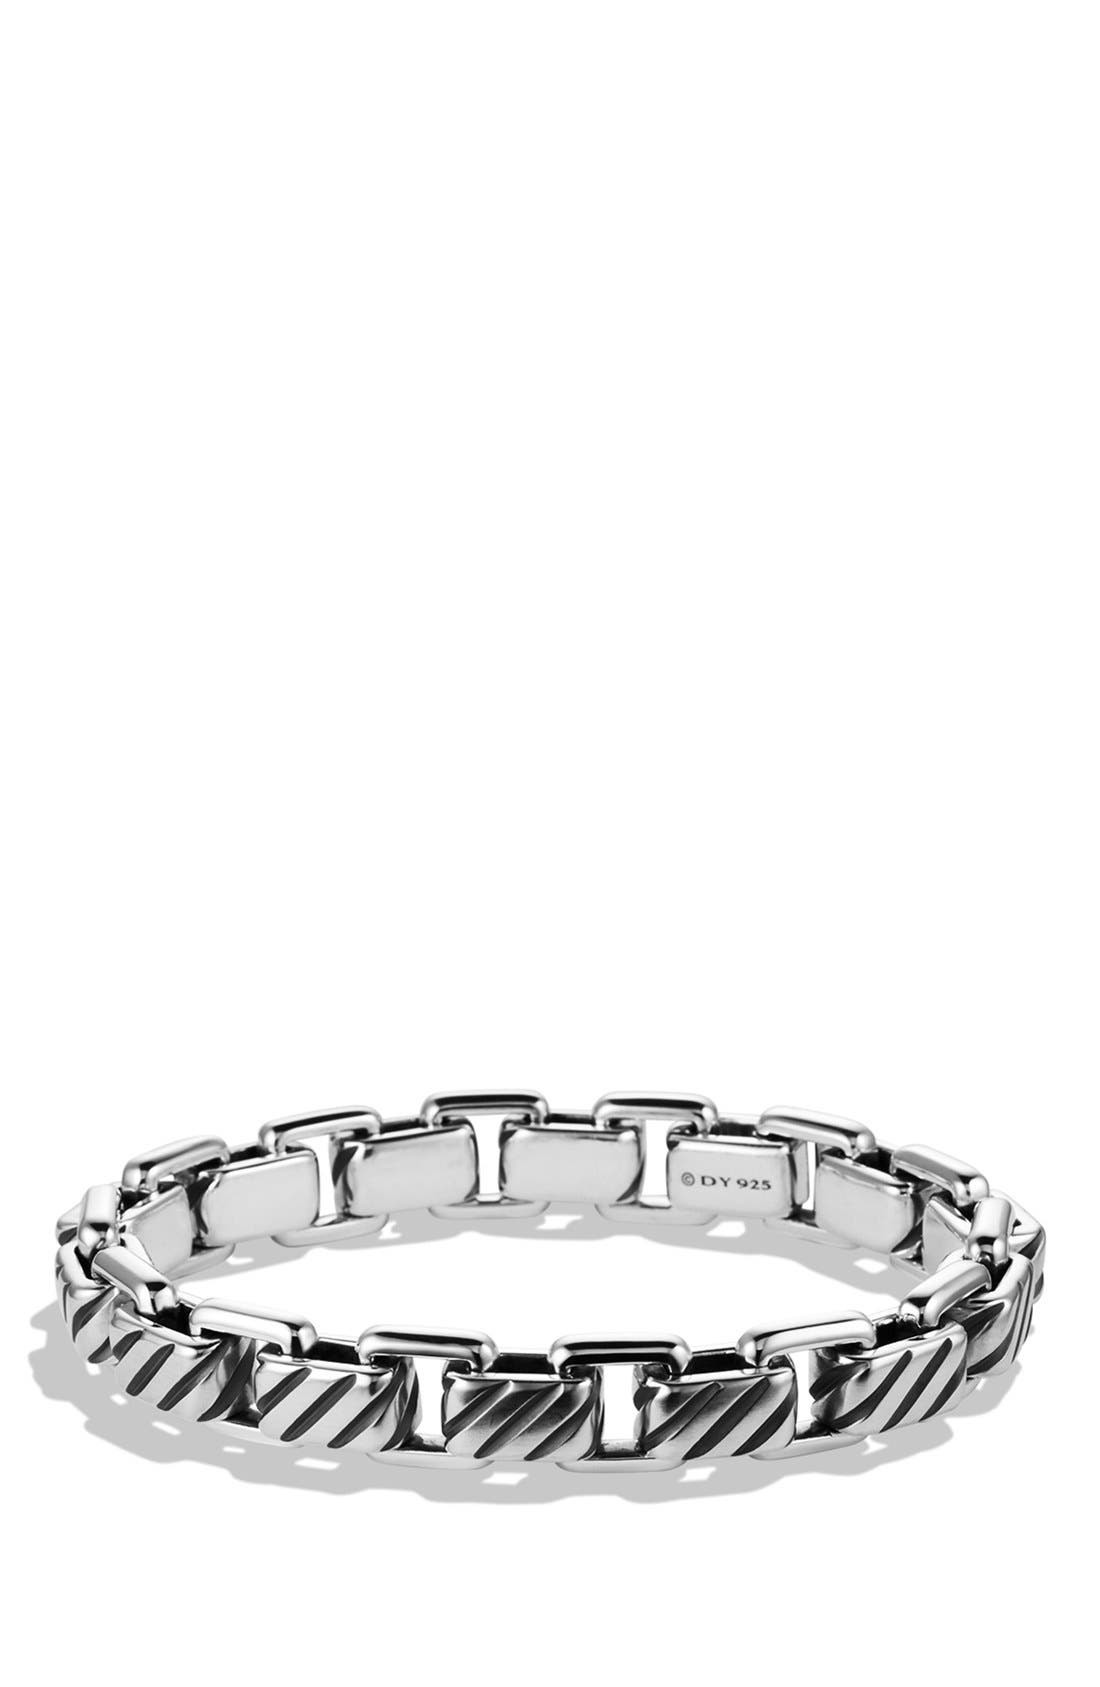 Main Image - David Yurman 'Modern Cable' Empire Link Bracelet